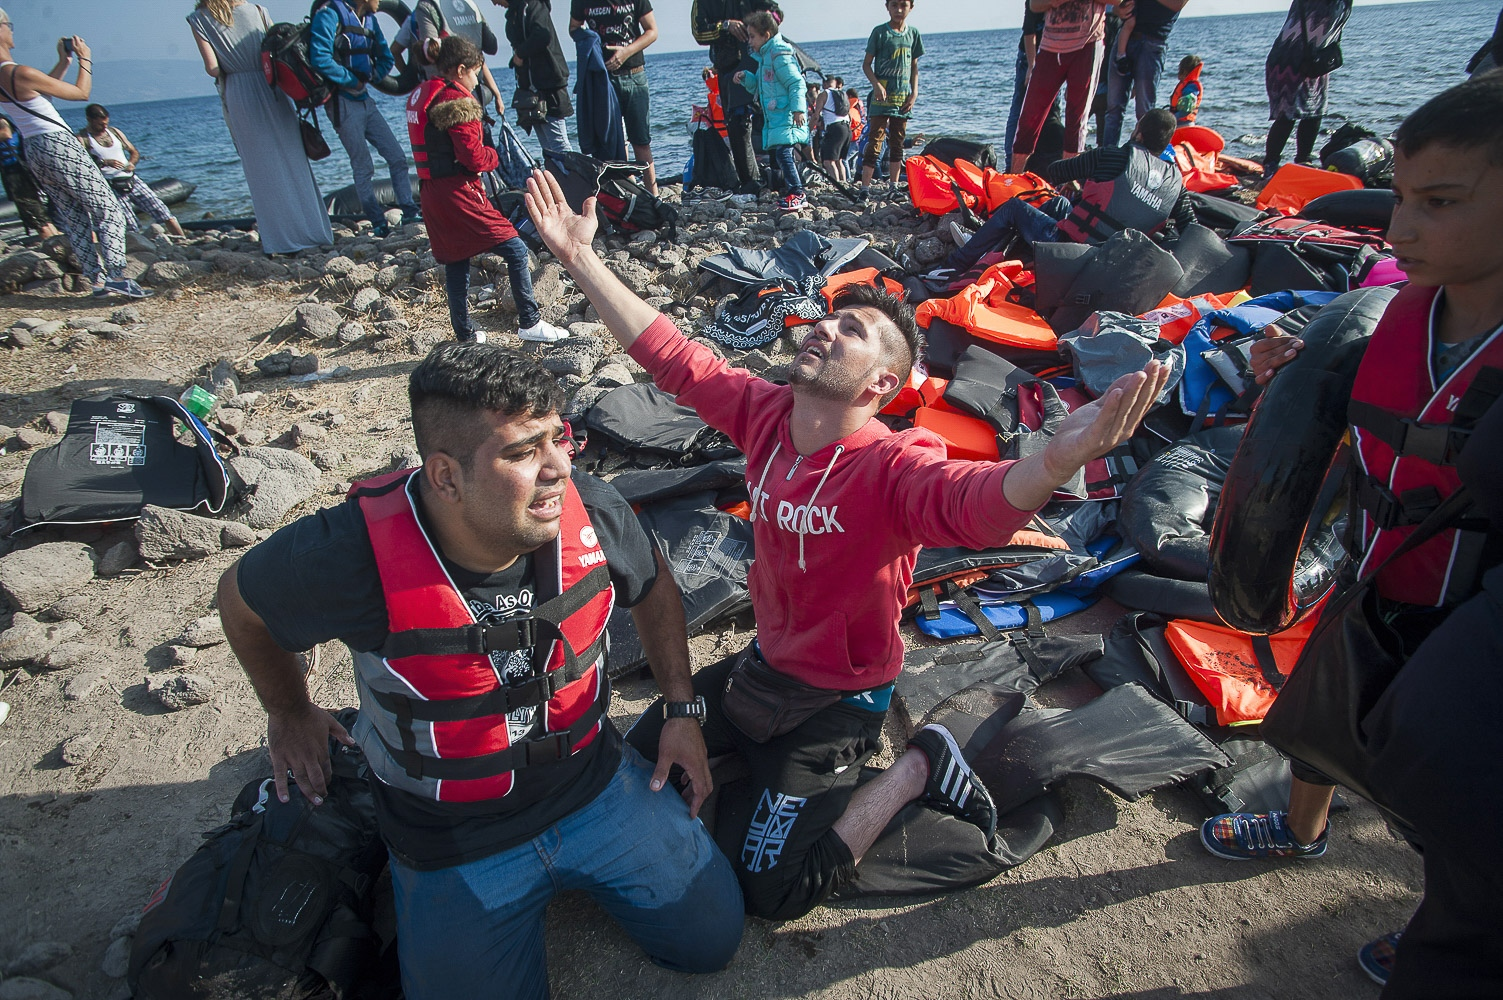 22 year old Hassat Abdul Haman from Aleppo, Syria, expresses his gratitude on his safe arrival at Limantziki beach near Mithimna, Lesbos, Greece, after crossing the Aegean Sea from Western Turkey in a rubber dinghy.